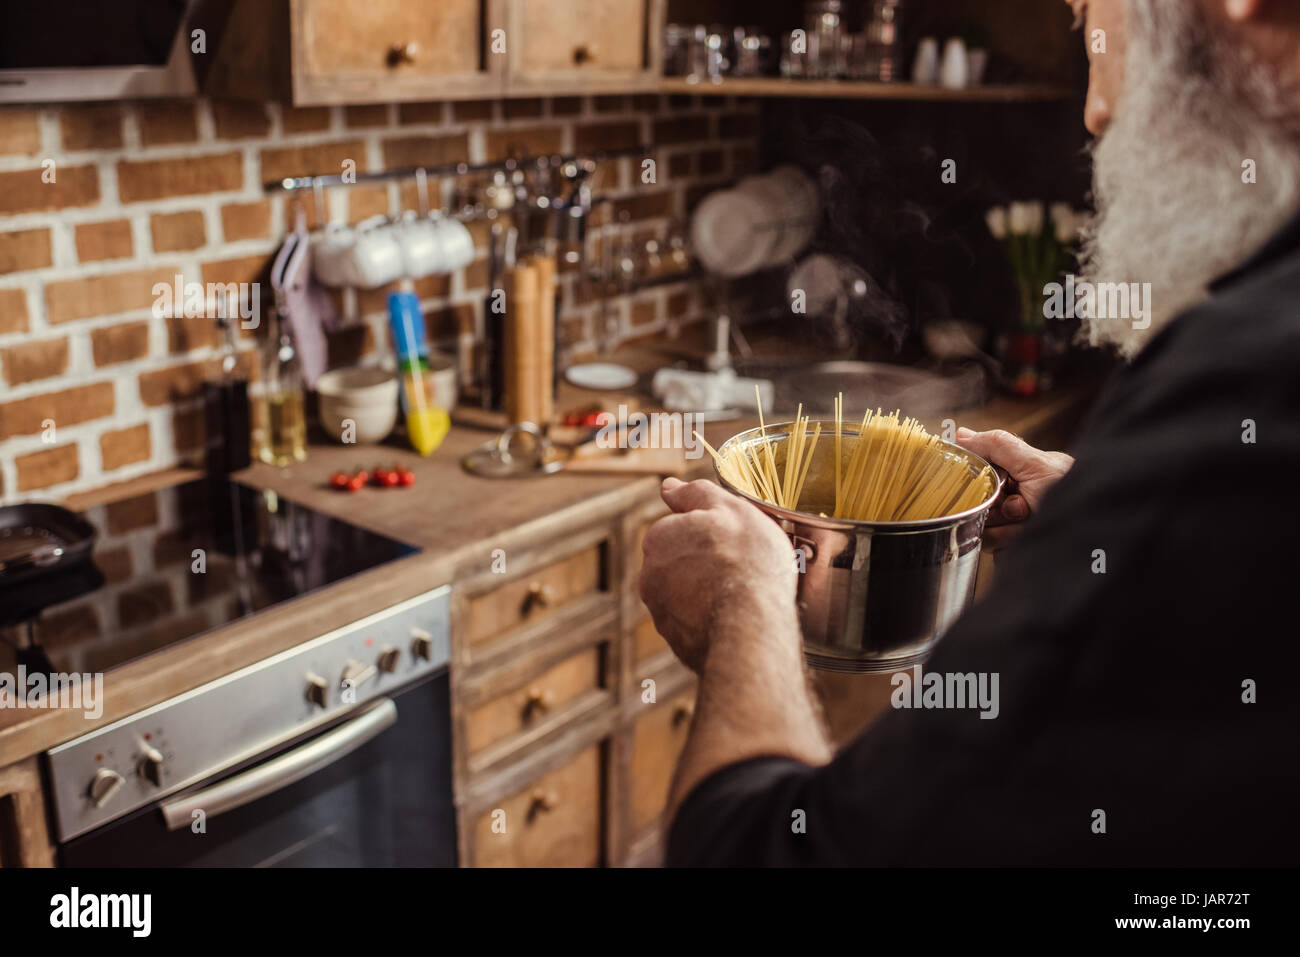 Man cooking spaghetti   - Stock Image